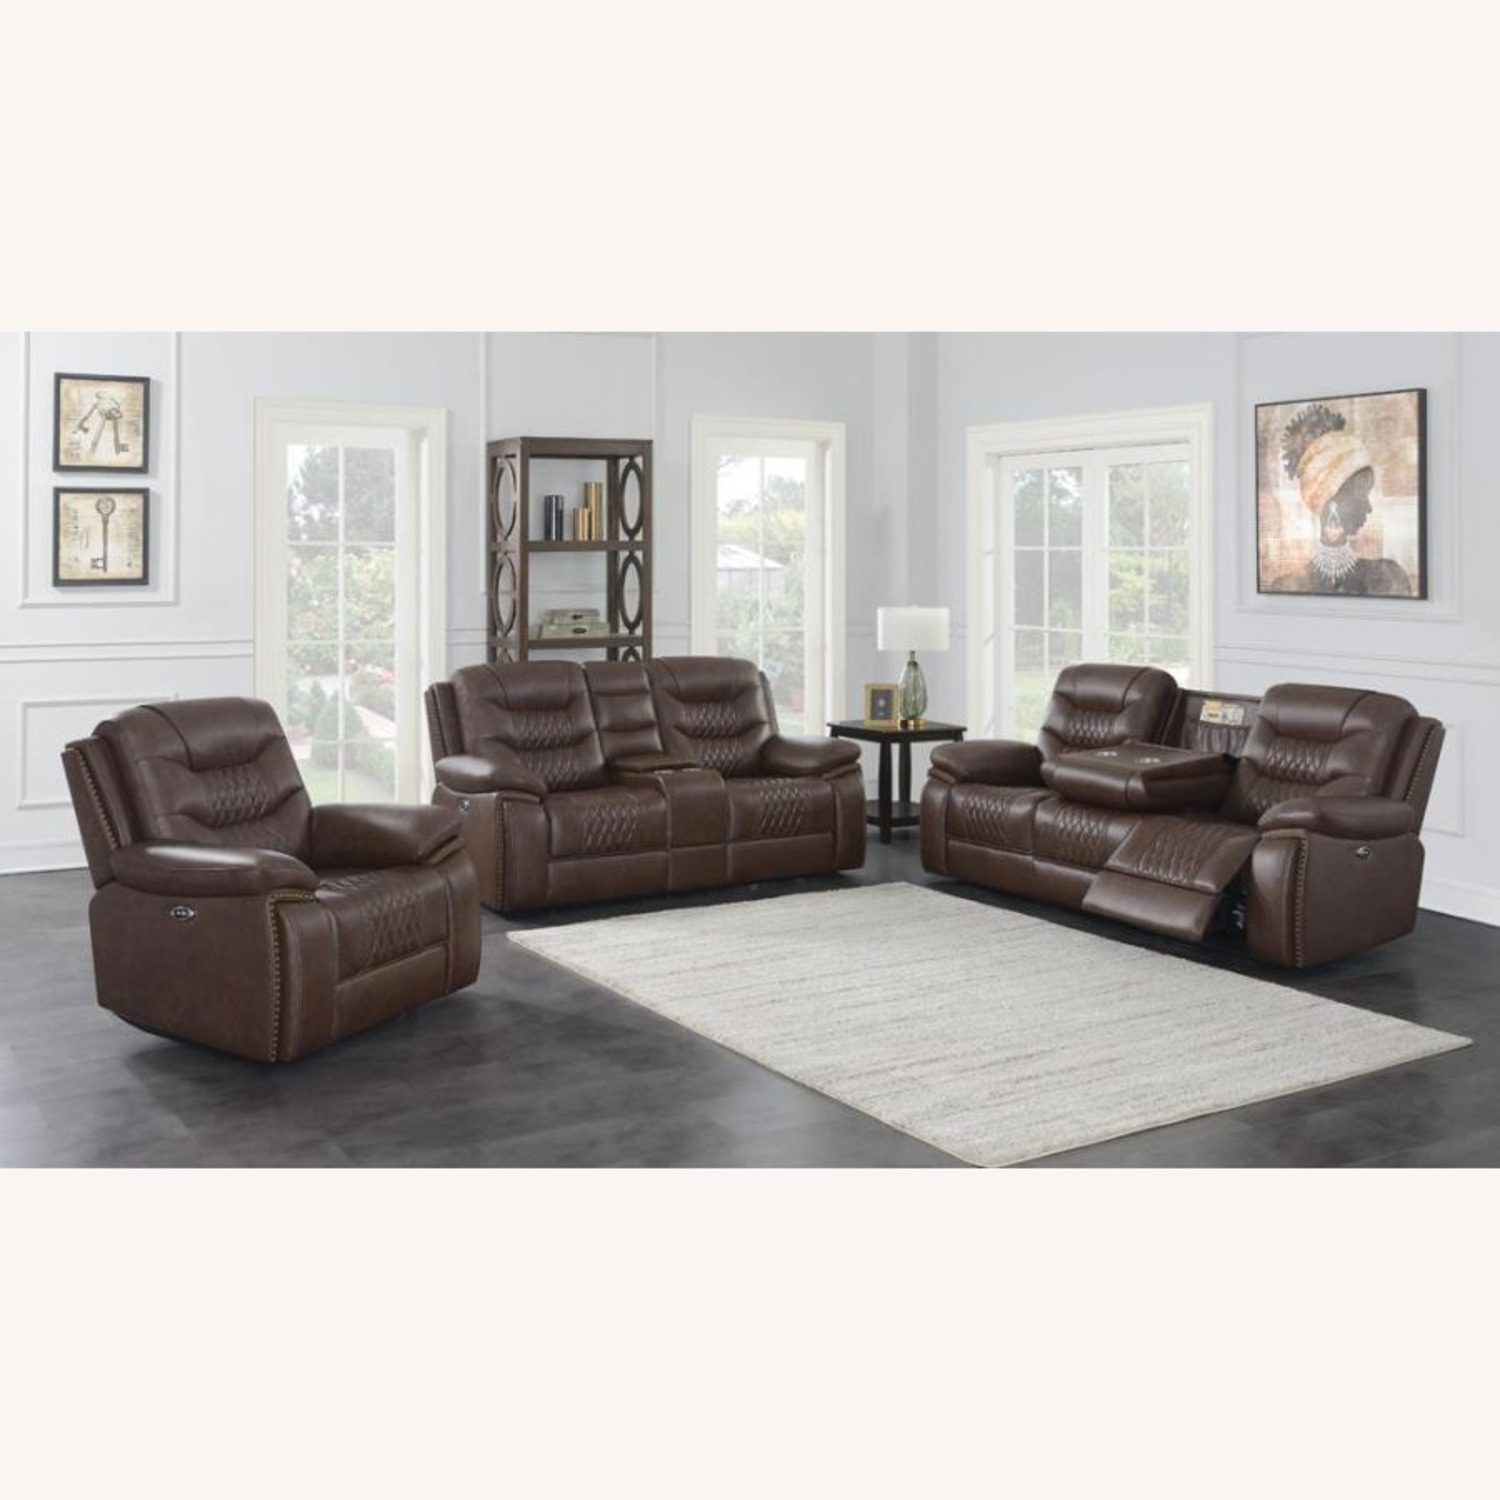 Power Recliner Upholstered In Brown Leatherette - image-3